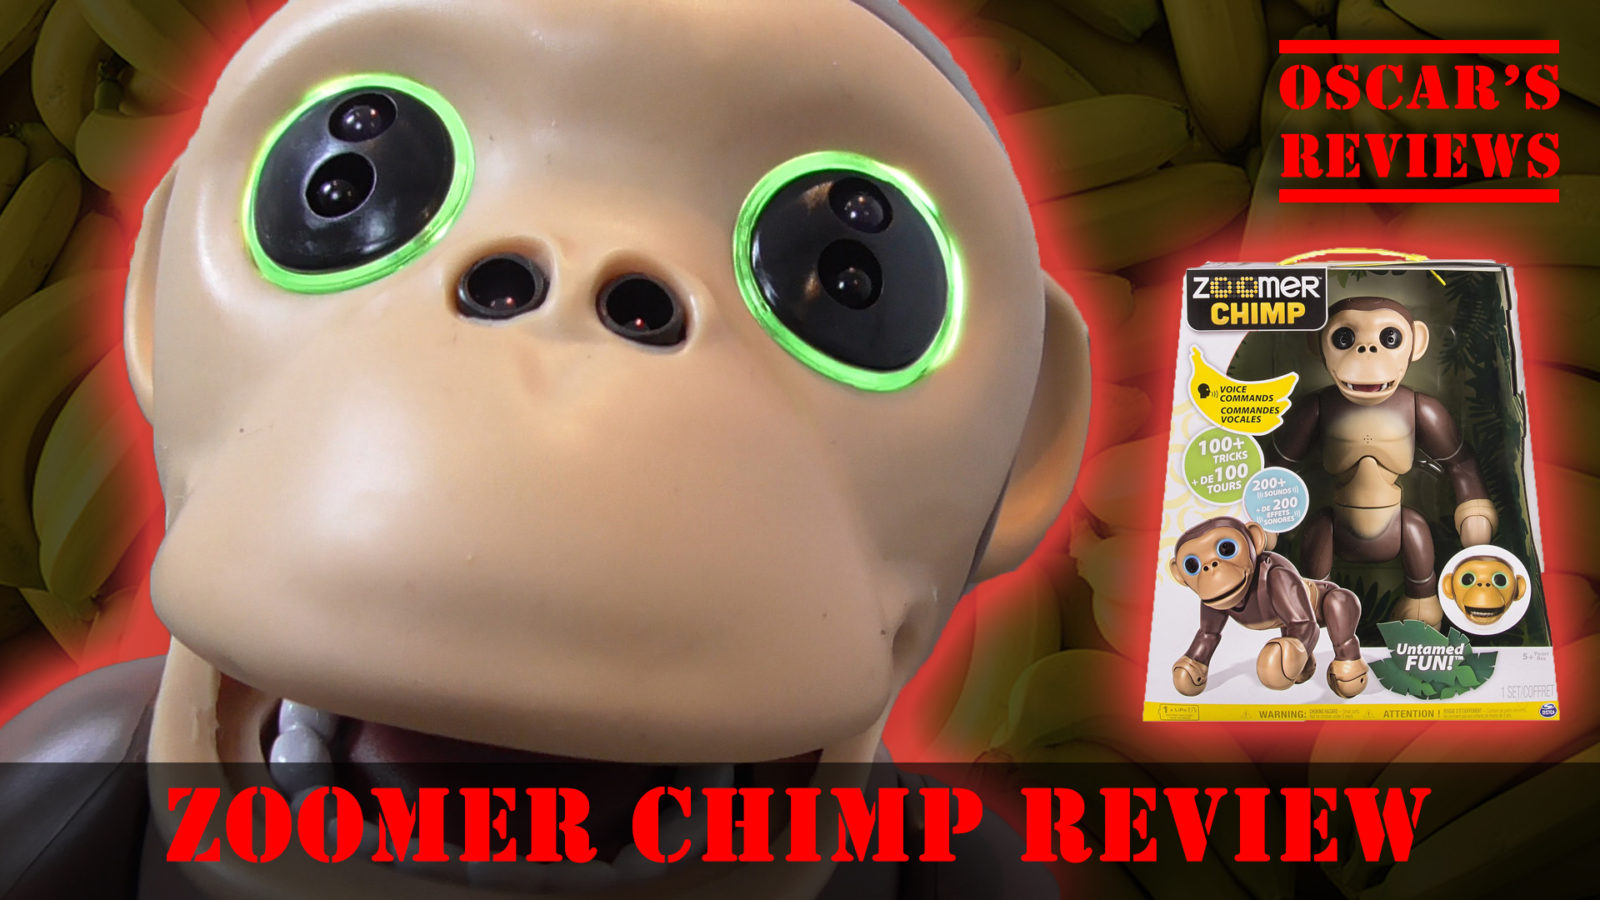 Zoomer Chimp: A Kids' Review of SpinMaster's Cheeky Monkey – Top Christmas Toys!